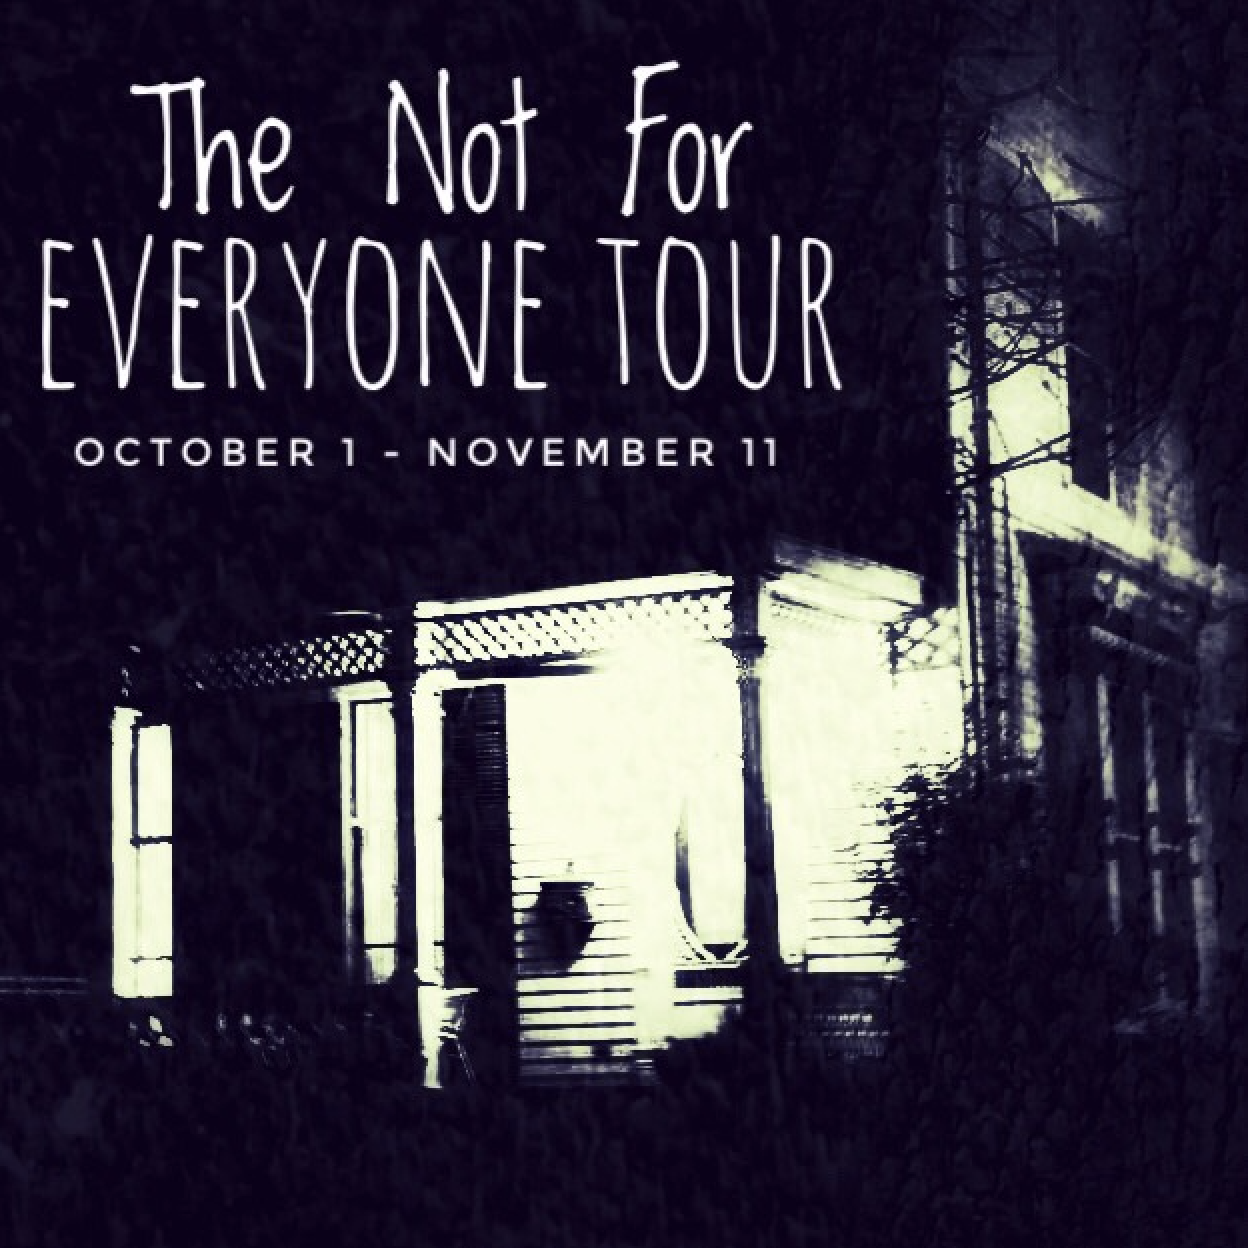 The Not For Everyone Tour